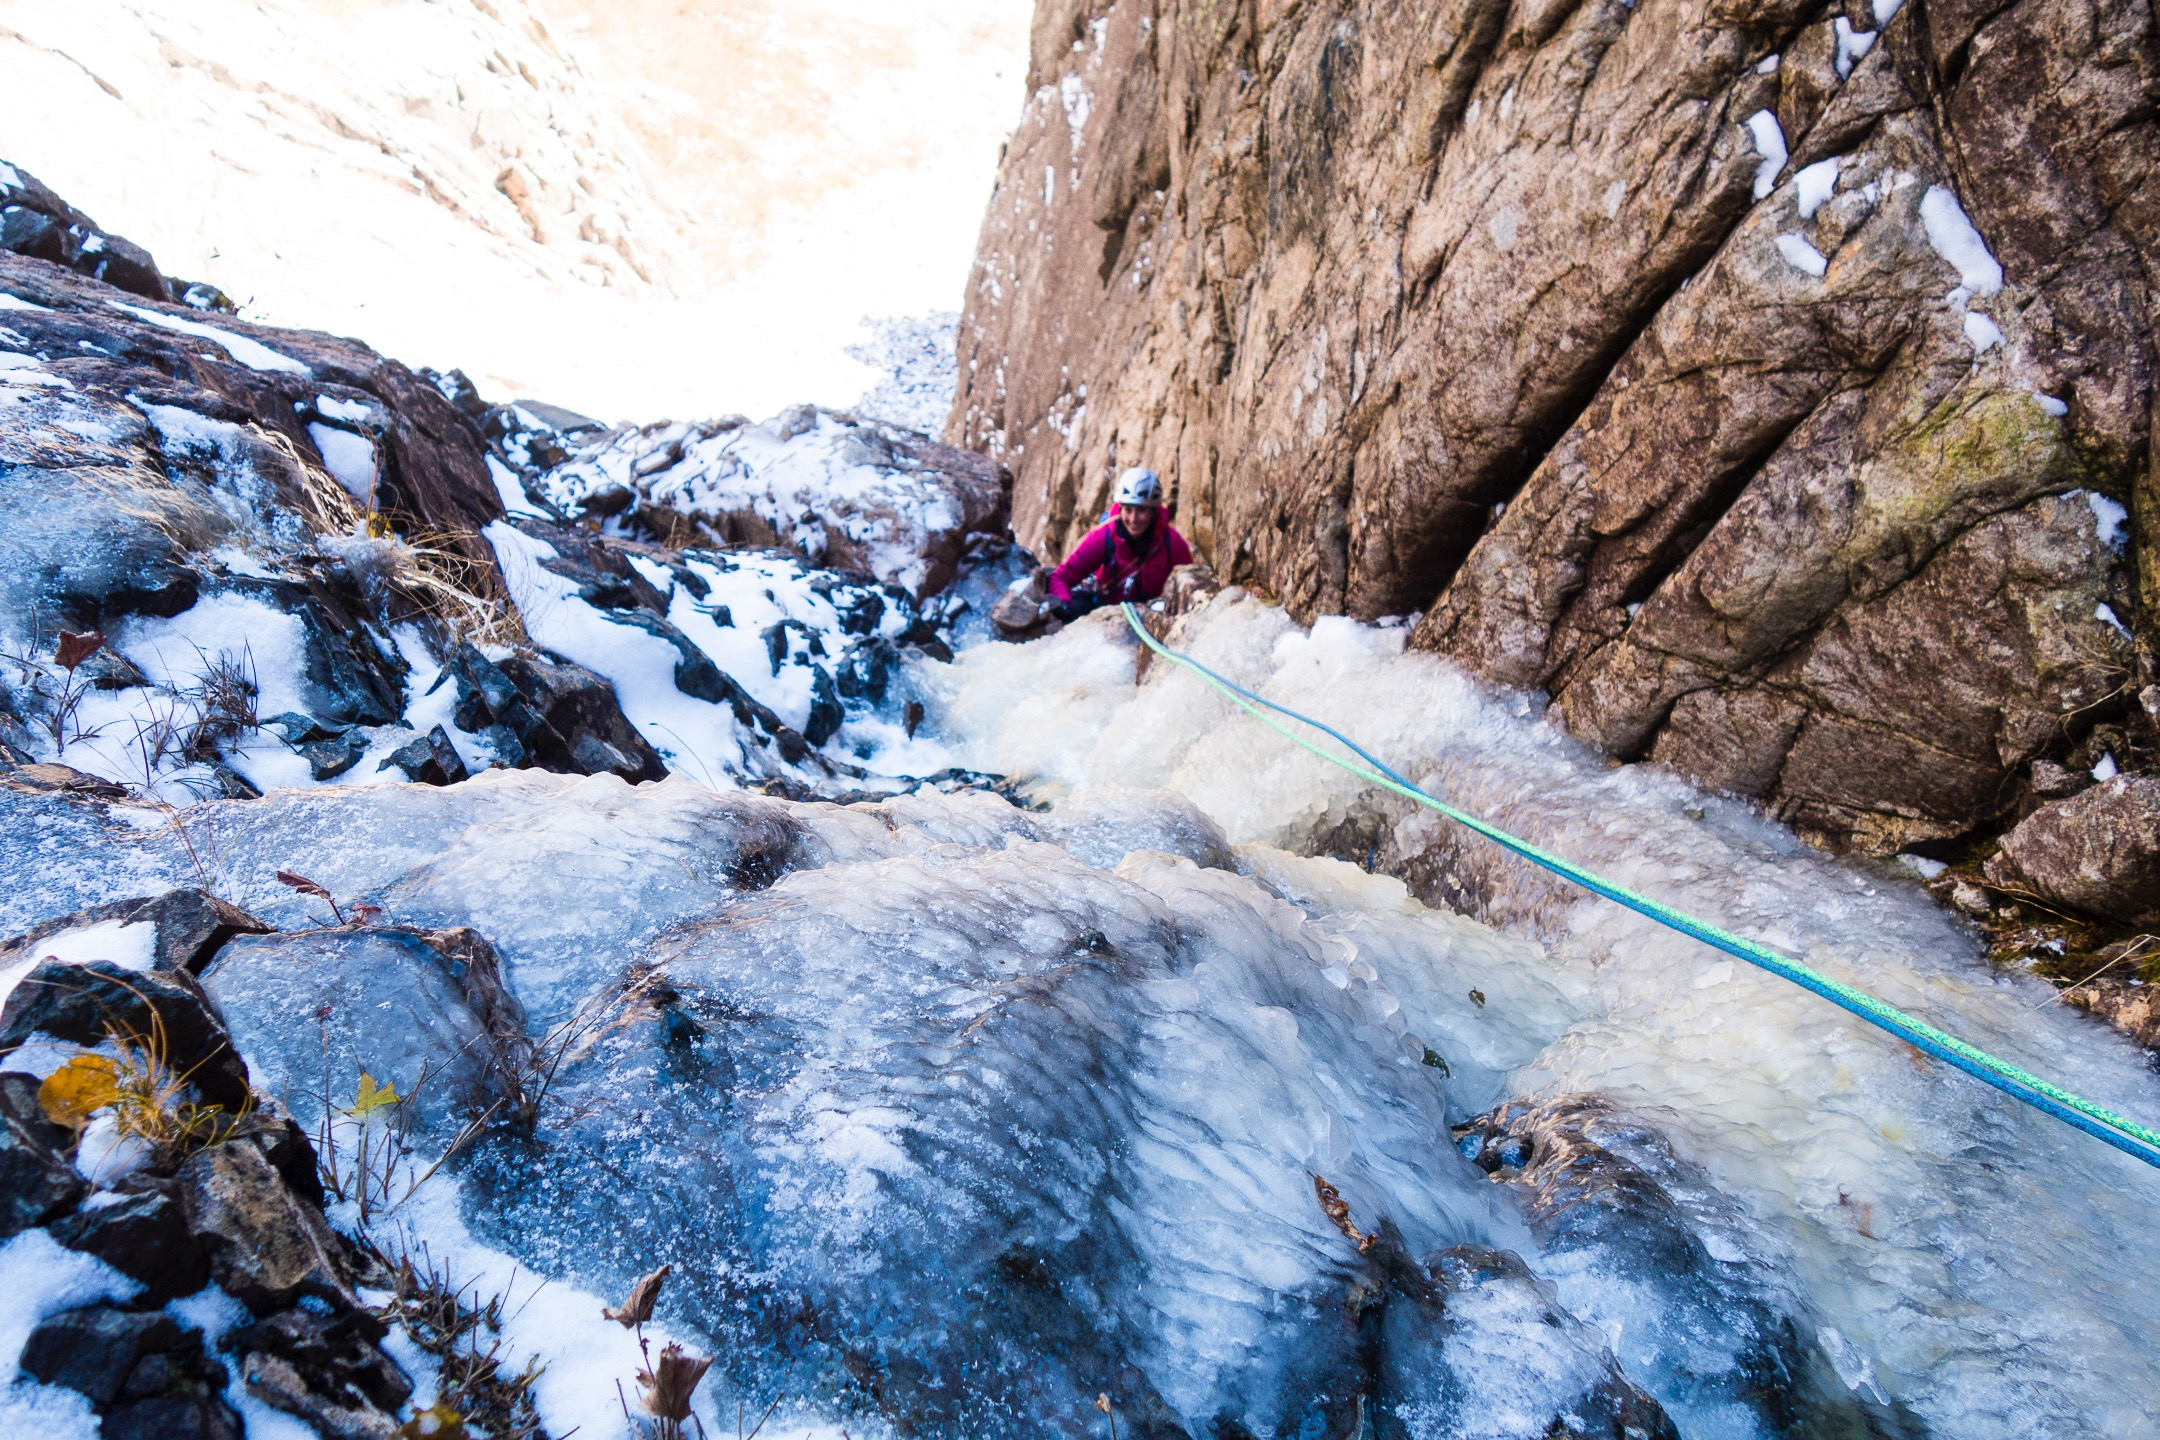 Pitch two was dry on the traverse, a bit of everything in the hose, and sticks up top. Alexa finishes it off, photo by Majka Burhardt.